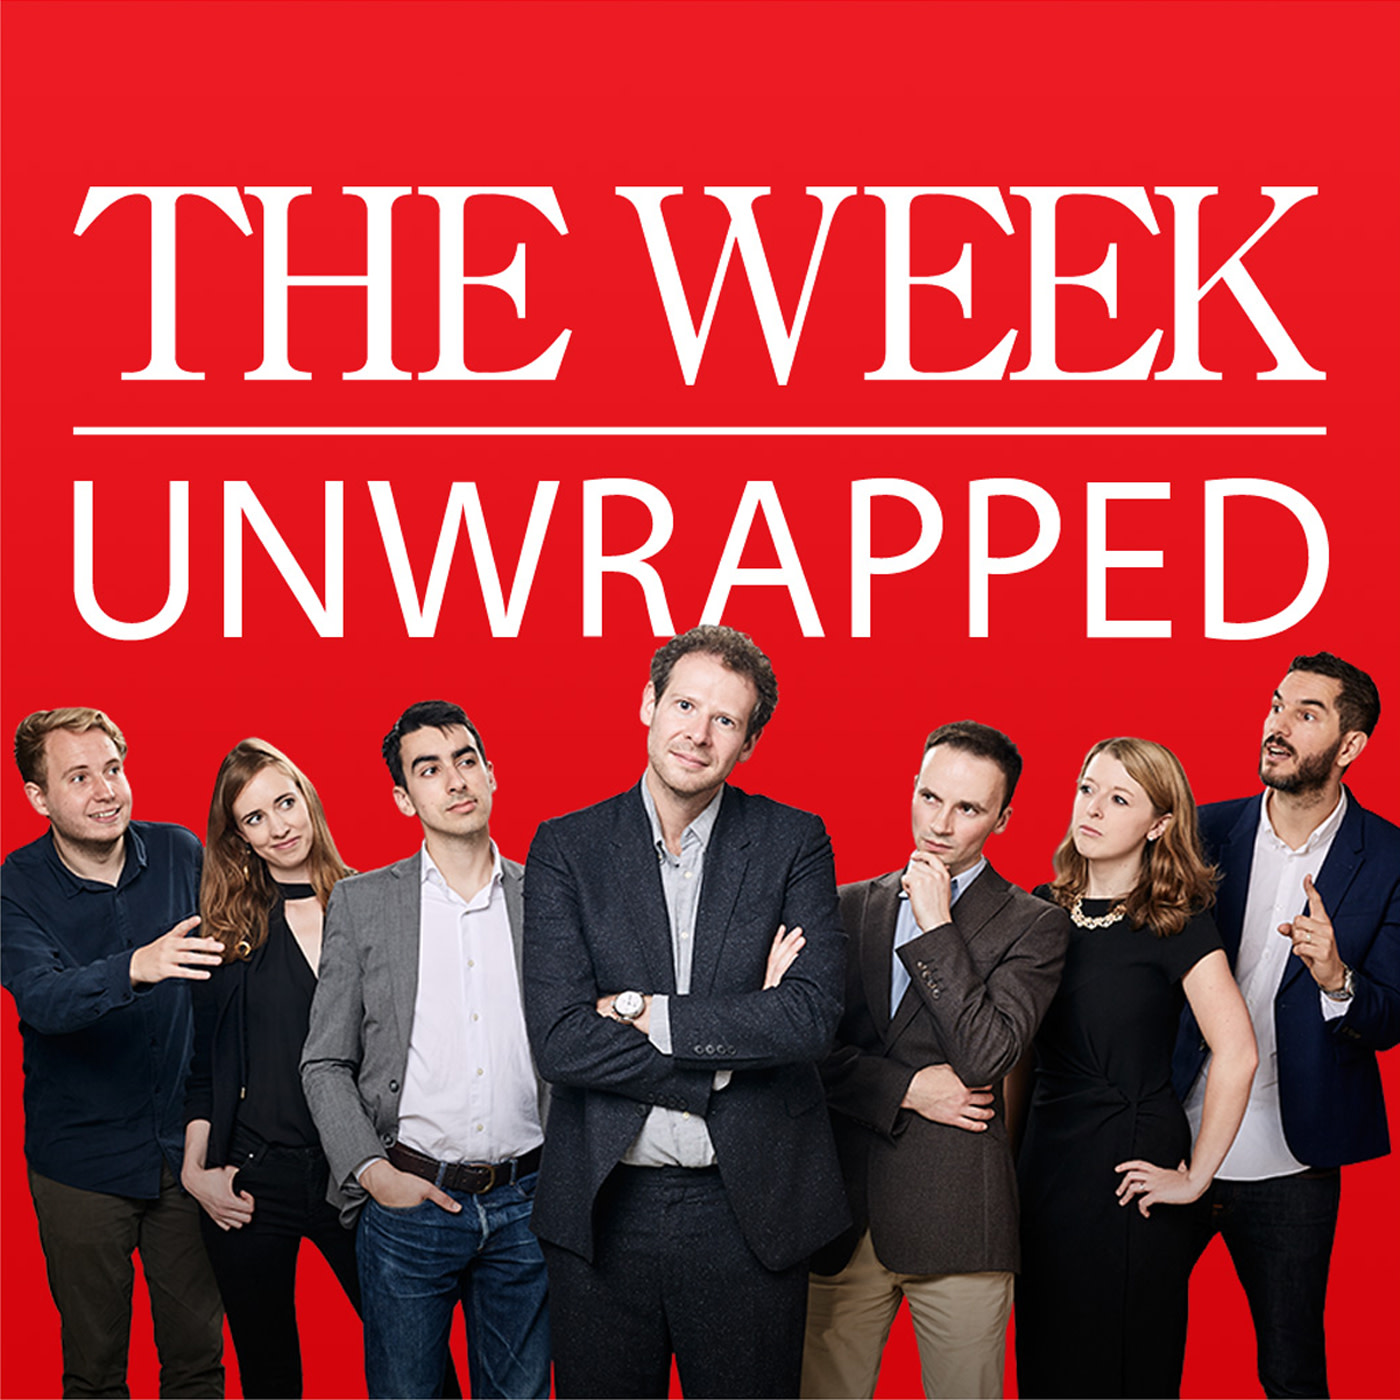 Bay Street Bull Podcasts Recommendation This Week Unwrapped